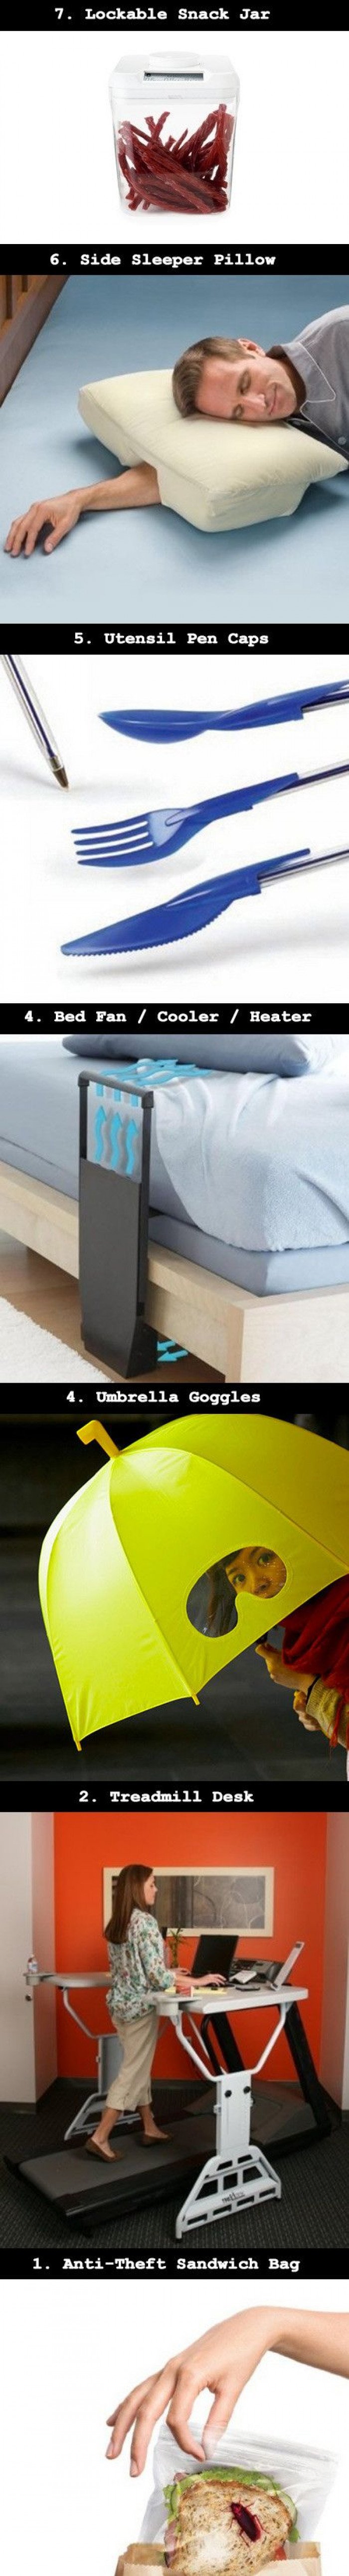 These Gadgets Would Make Your Life Ten Times Easier